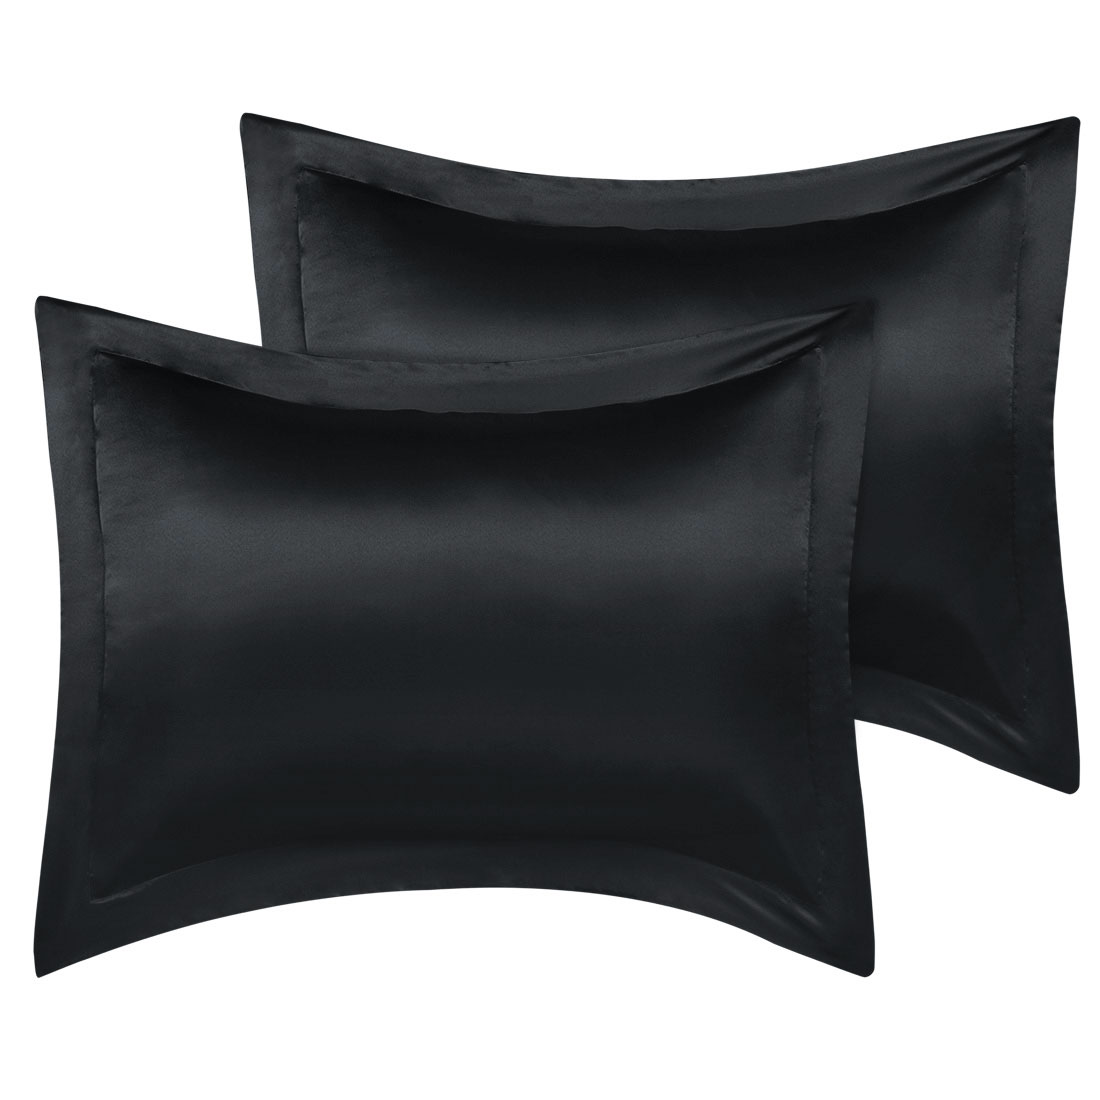 2 Pcs Black Pillow Shams Satin Pillow Cases Boudoir Oxford Pillowcases